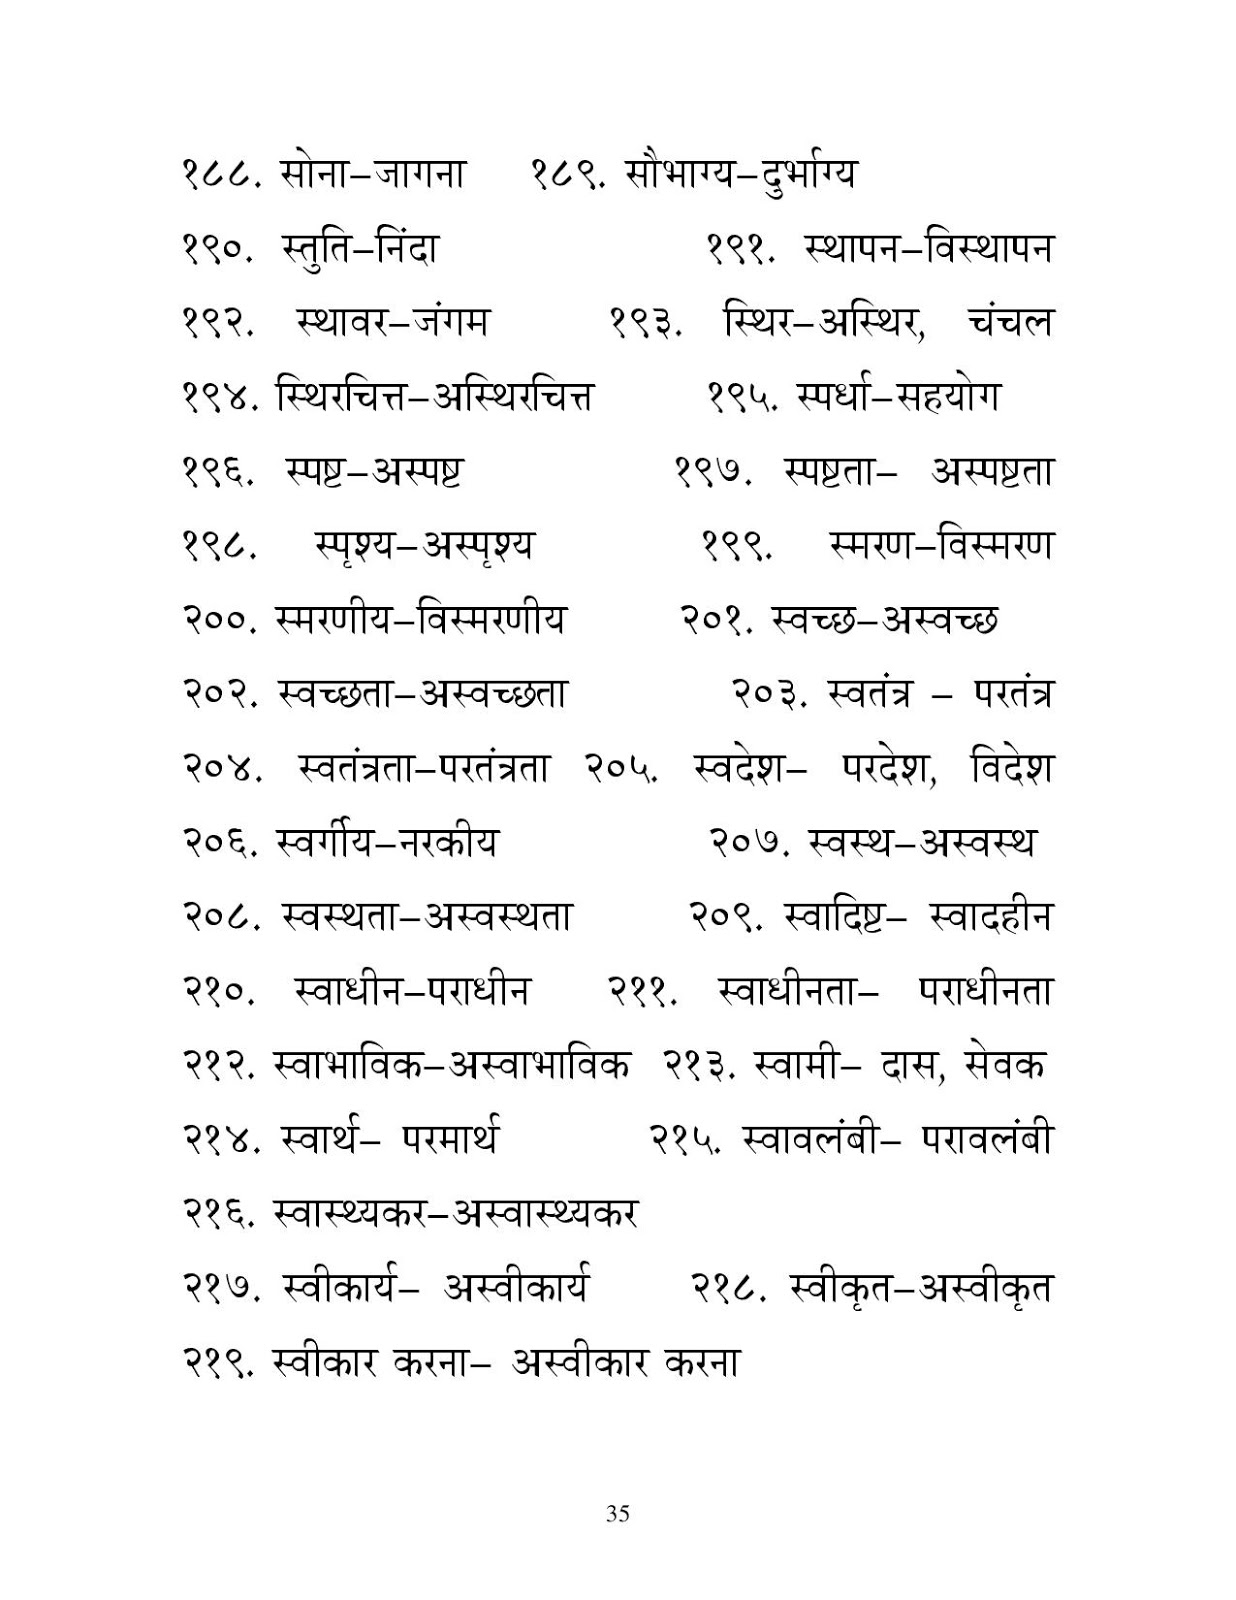 Hindi Grammar Work Sheet Collection For Classes 5 6 7 Amp 8 Collection Of Opposites Synonyms